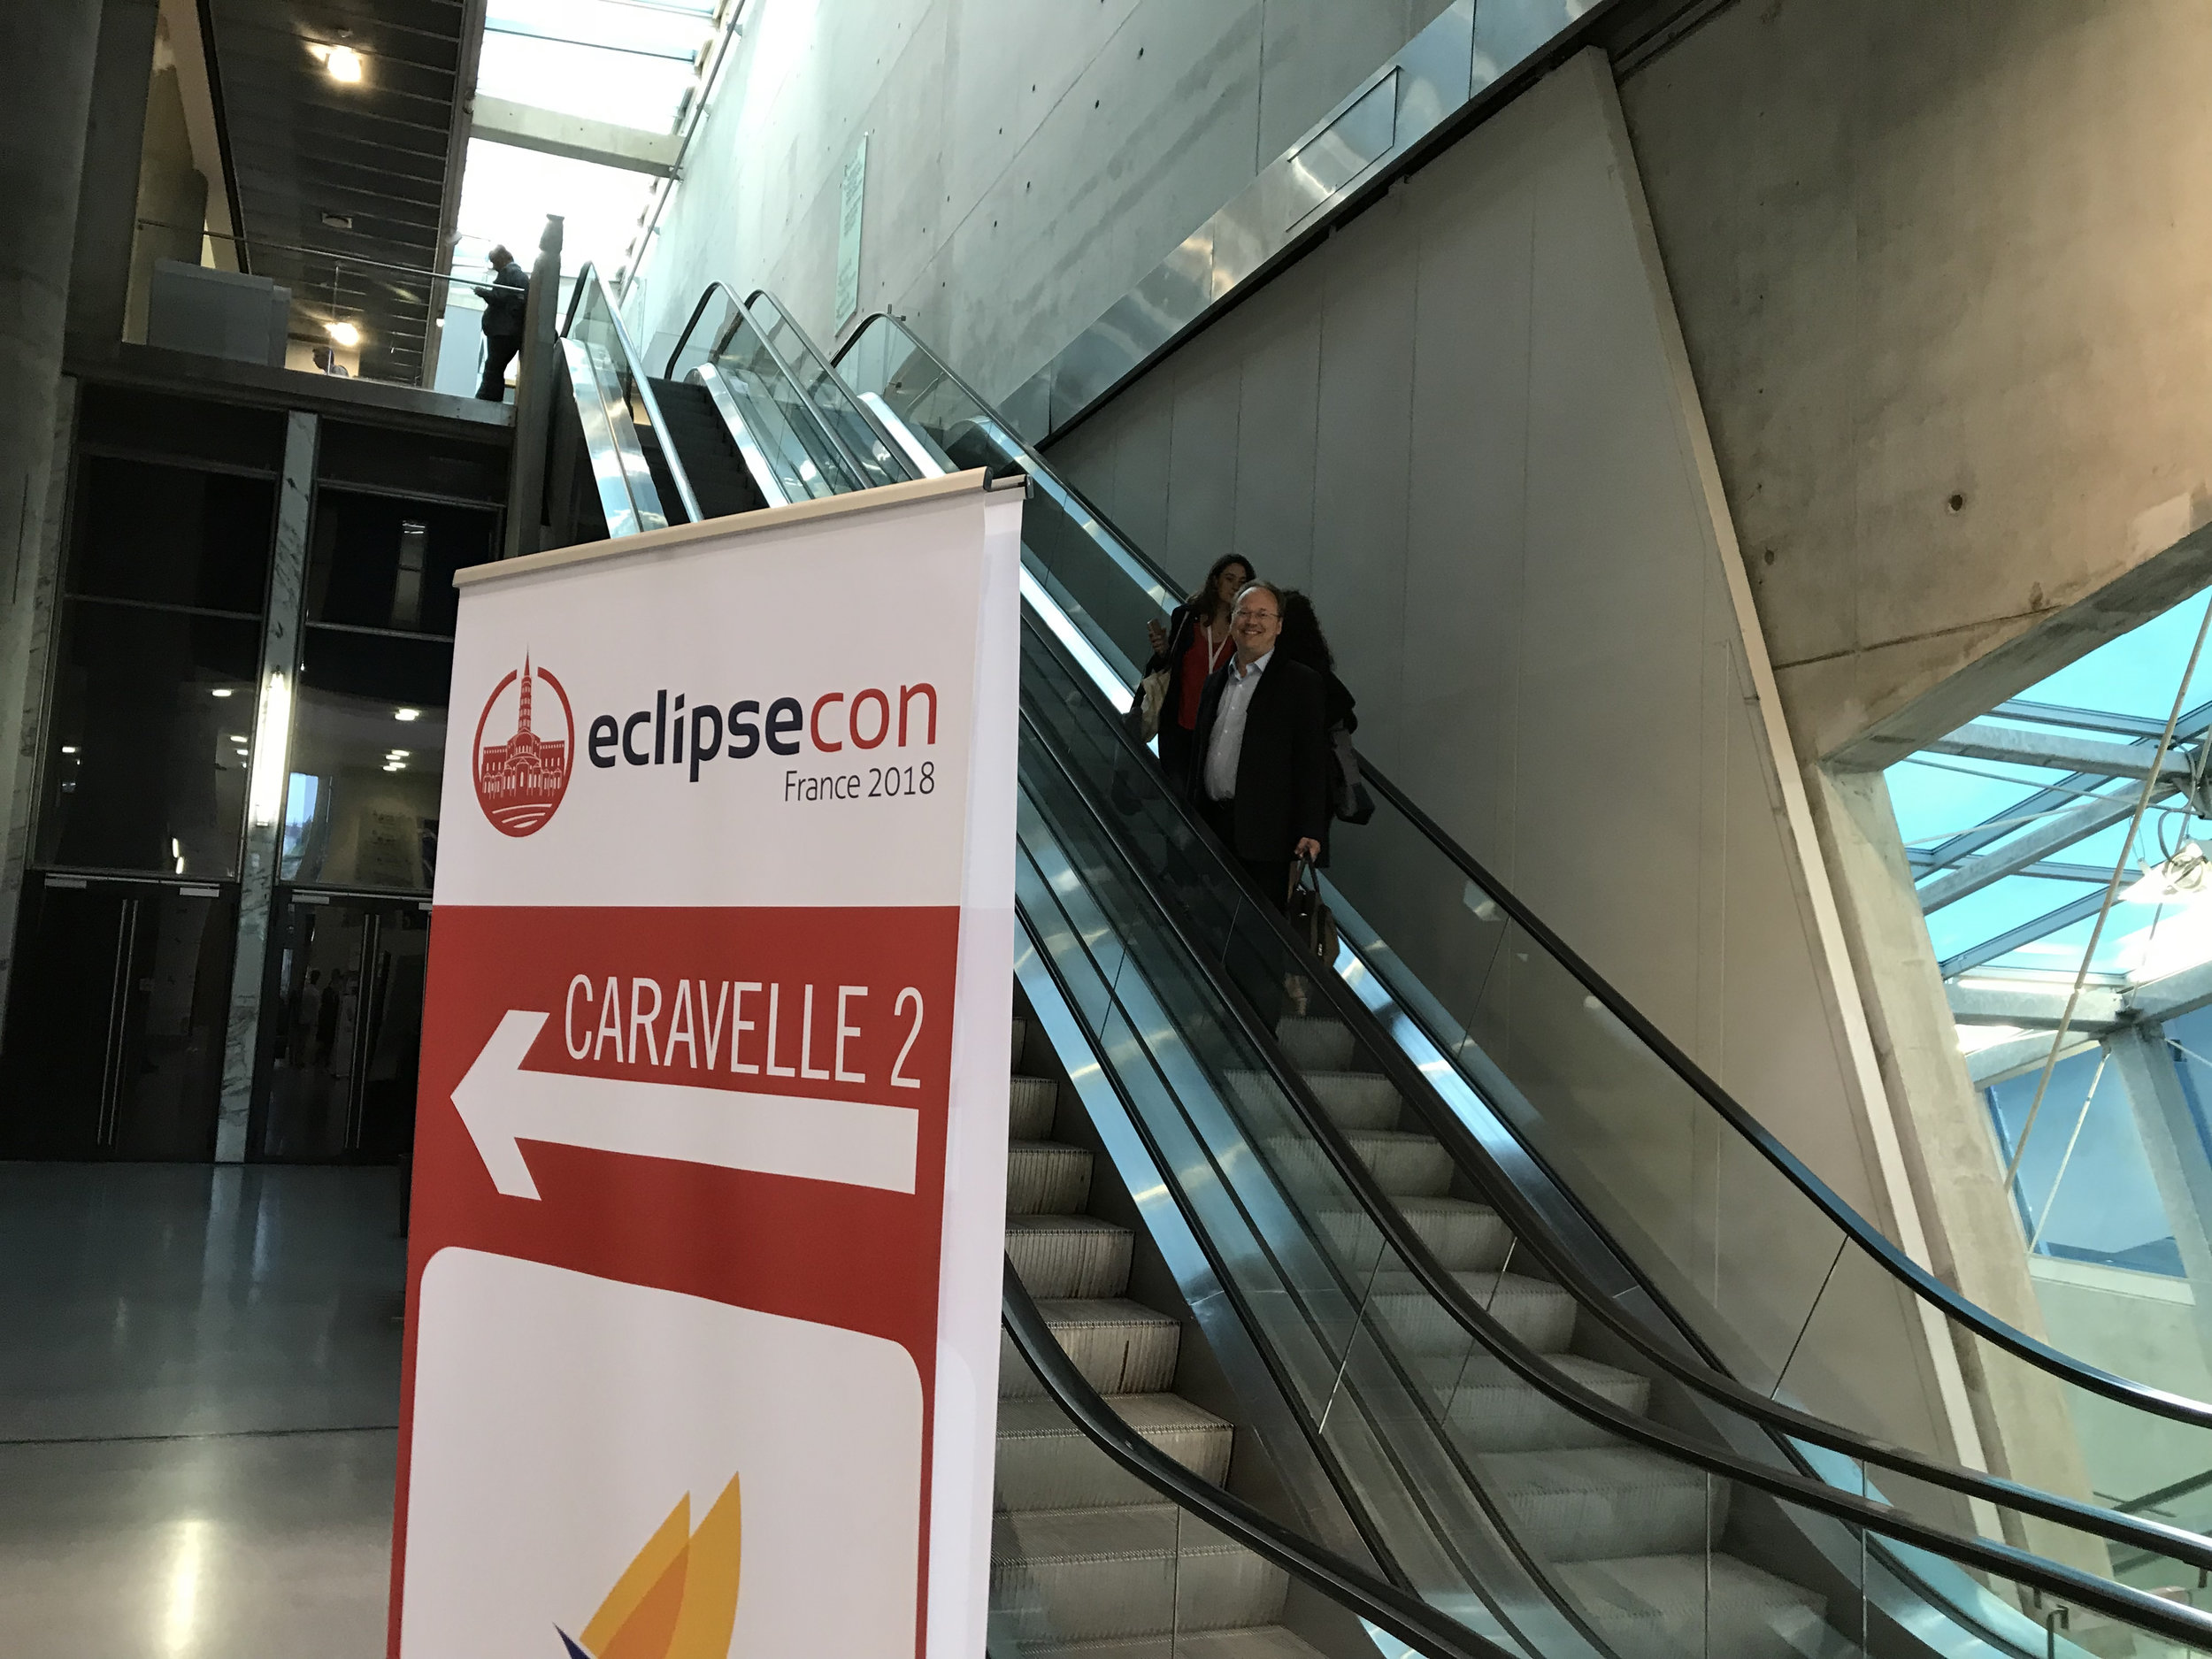 Up to the EclipseCon area in the conference building